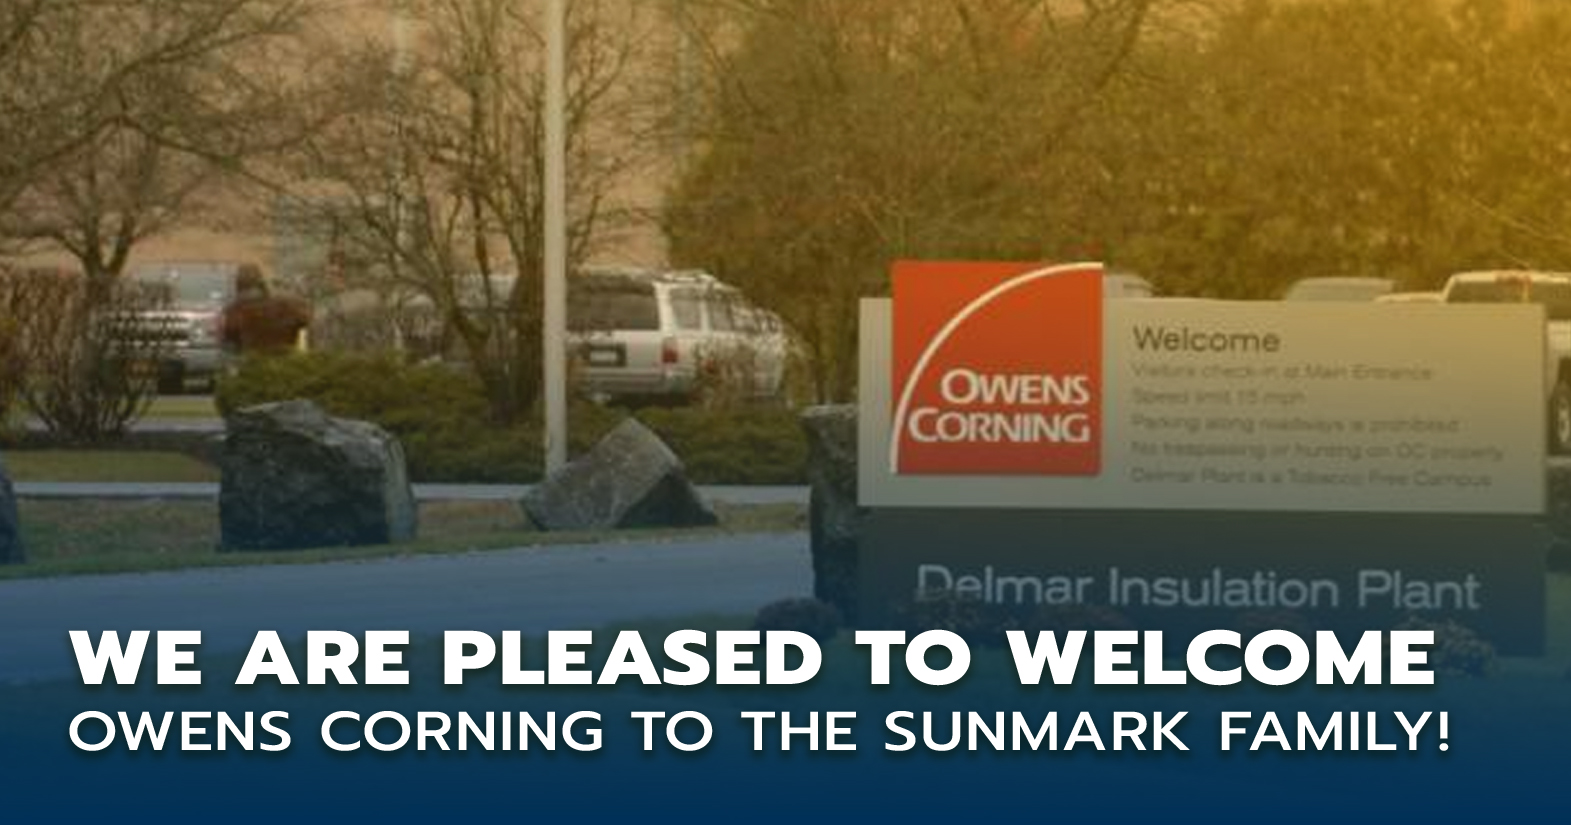 Welcome Owens Corning members!